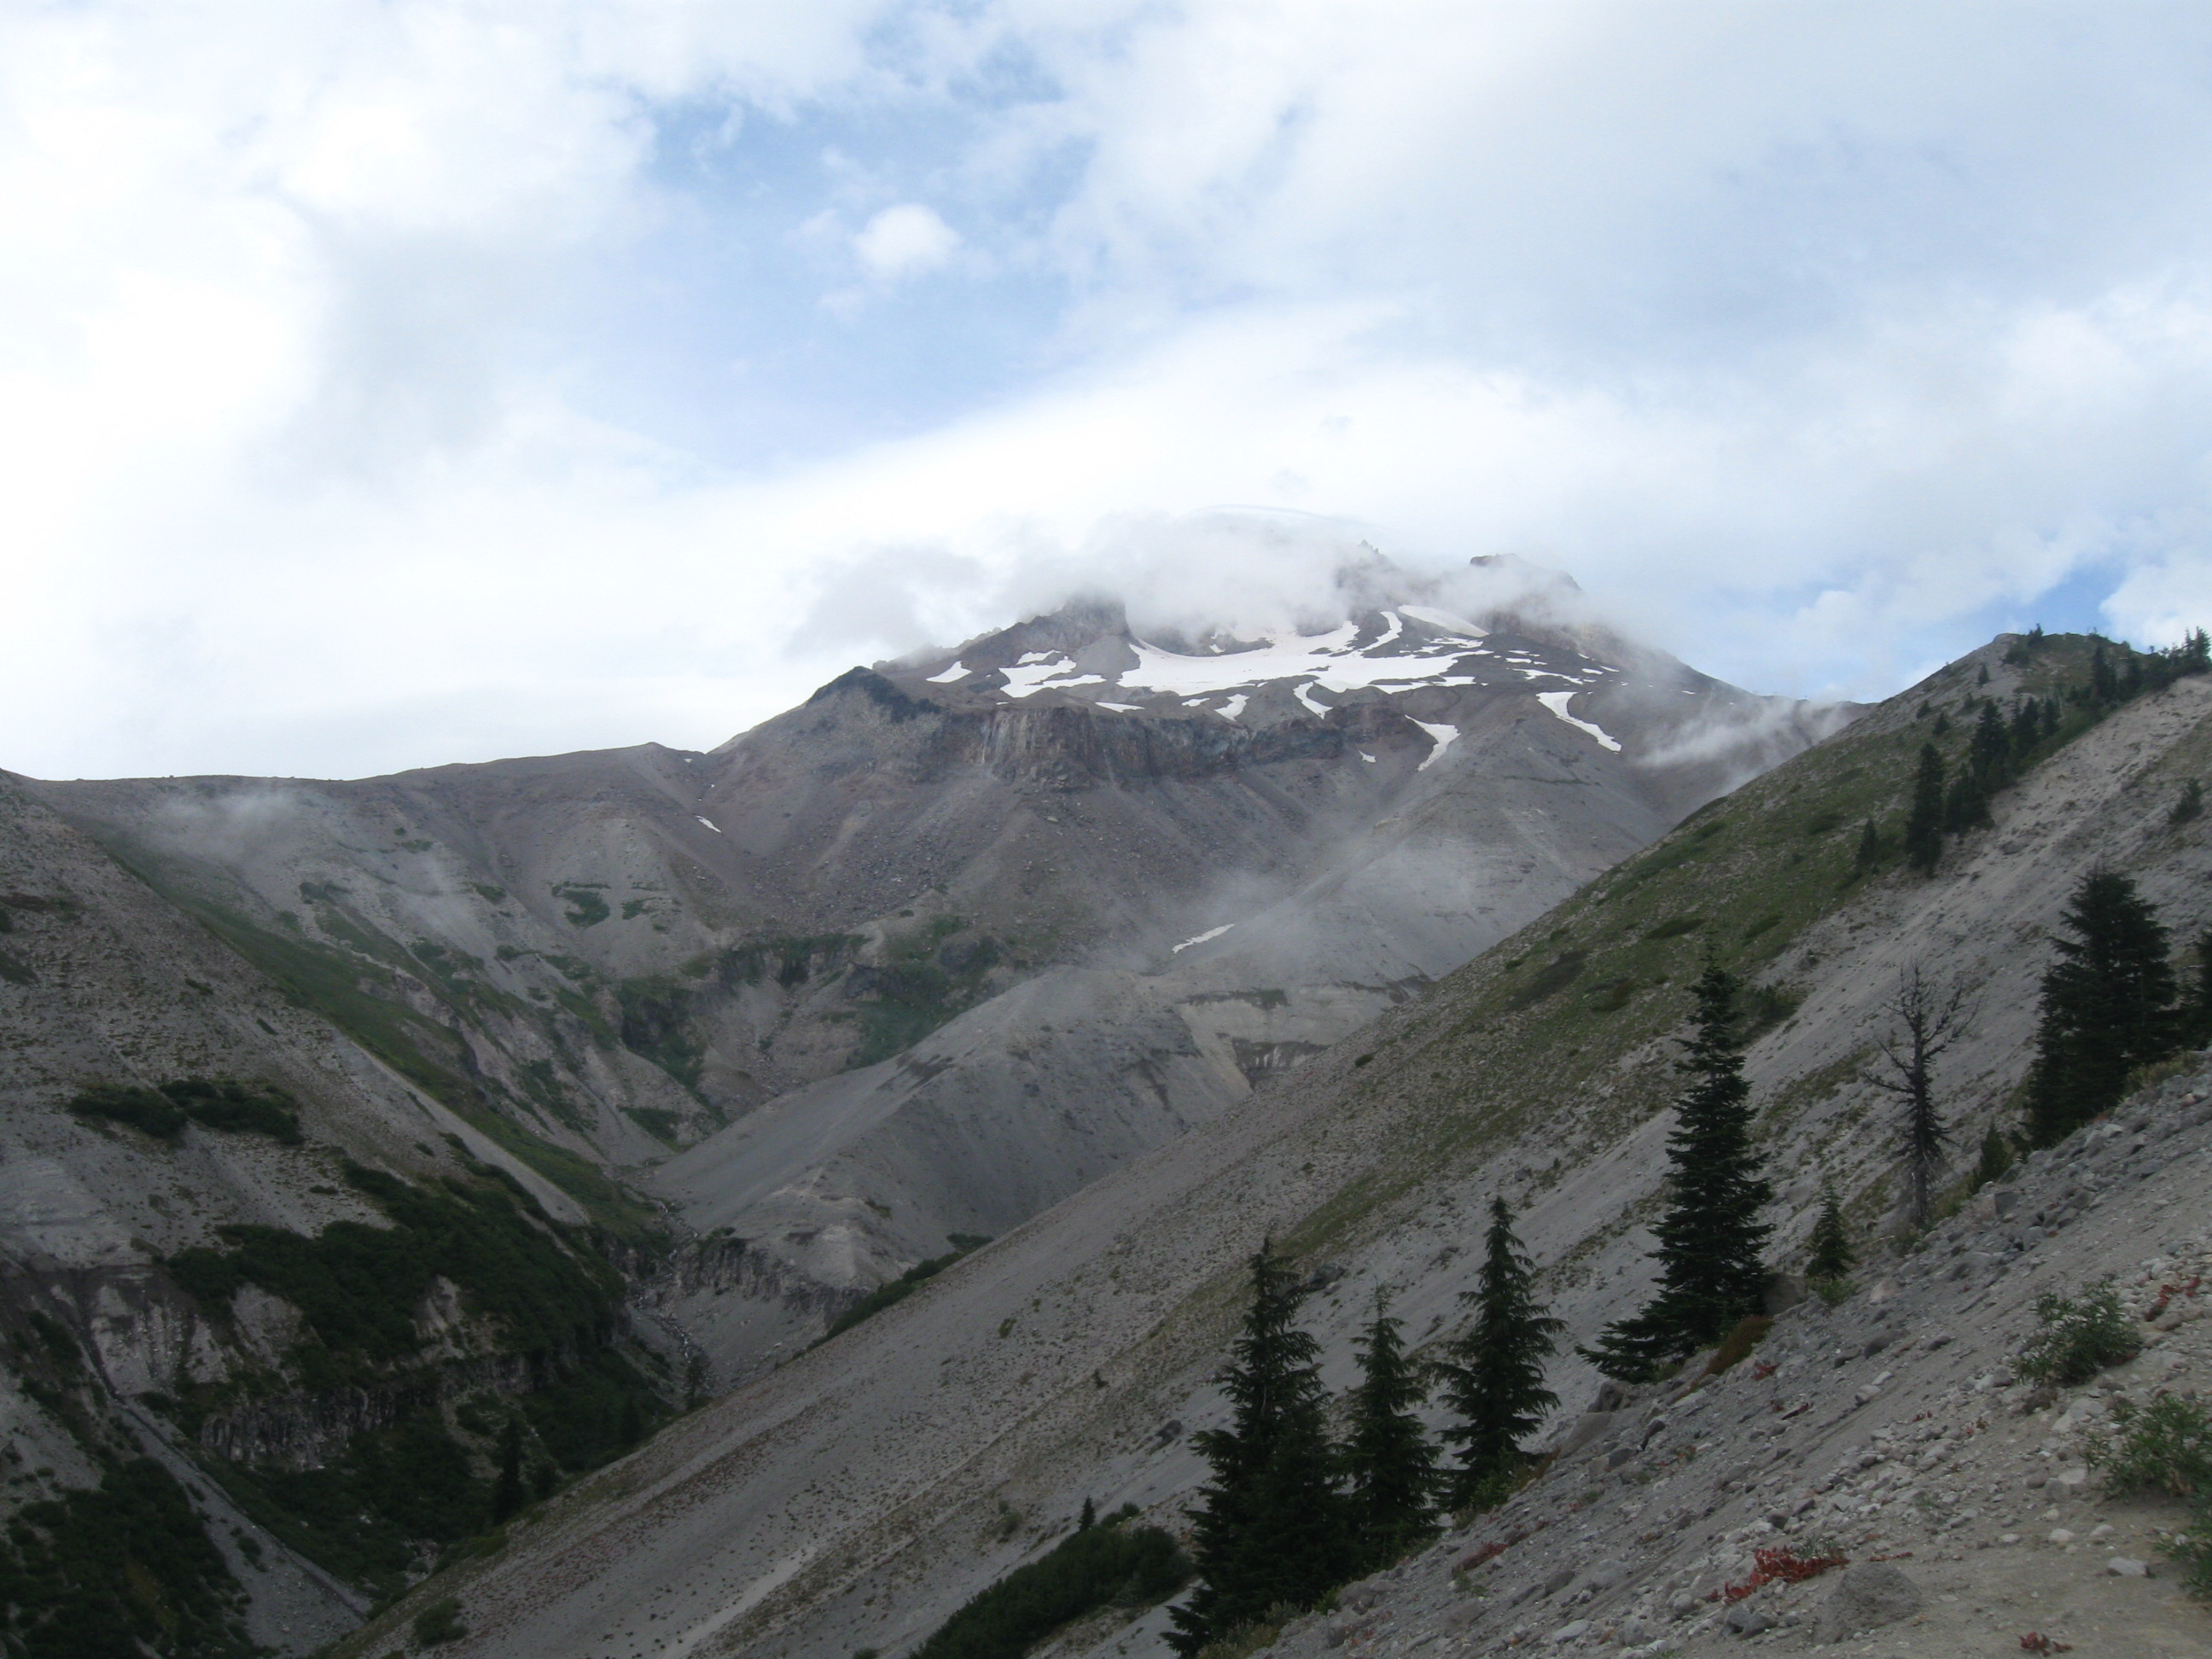 Timberline Trail, Aug 2013